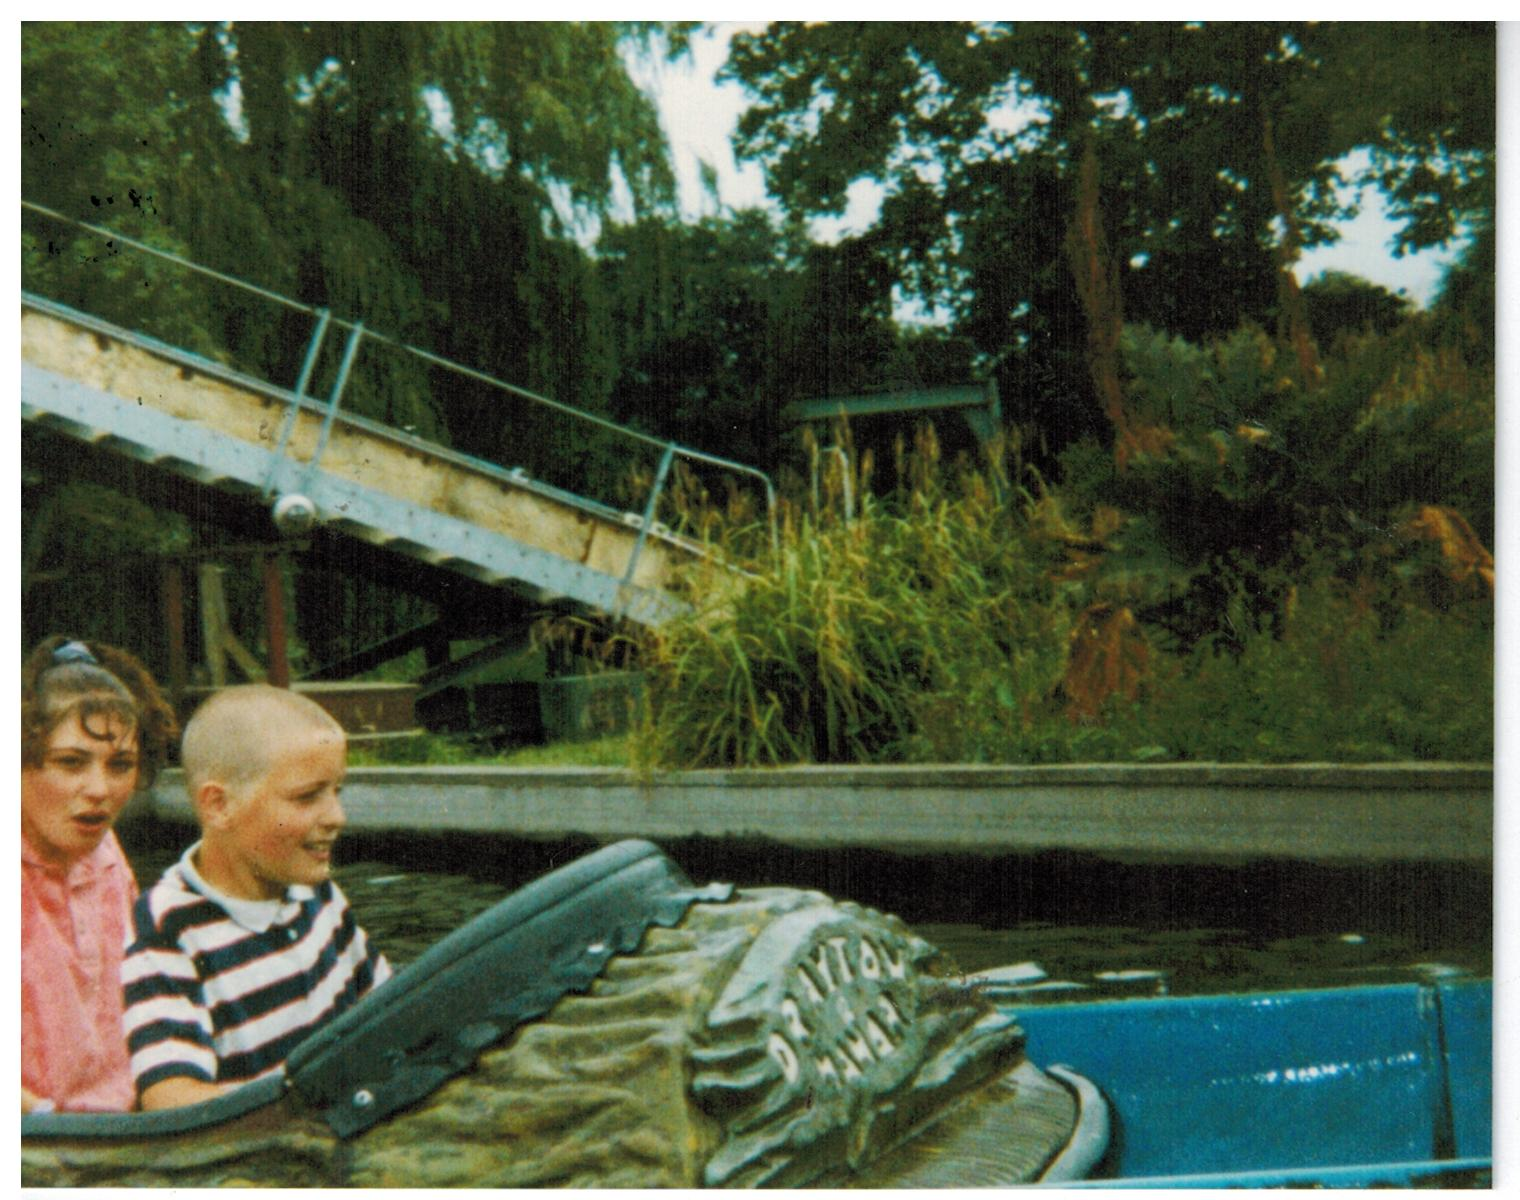 I045_Drayton-Manor-1995